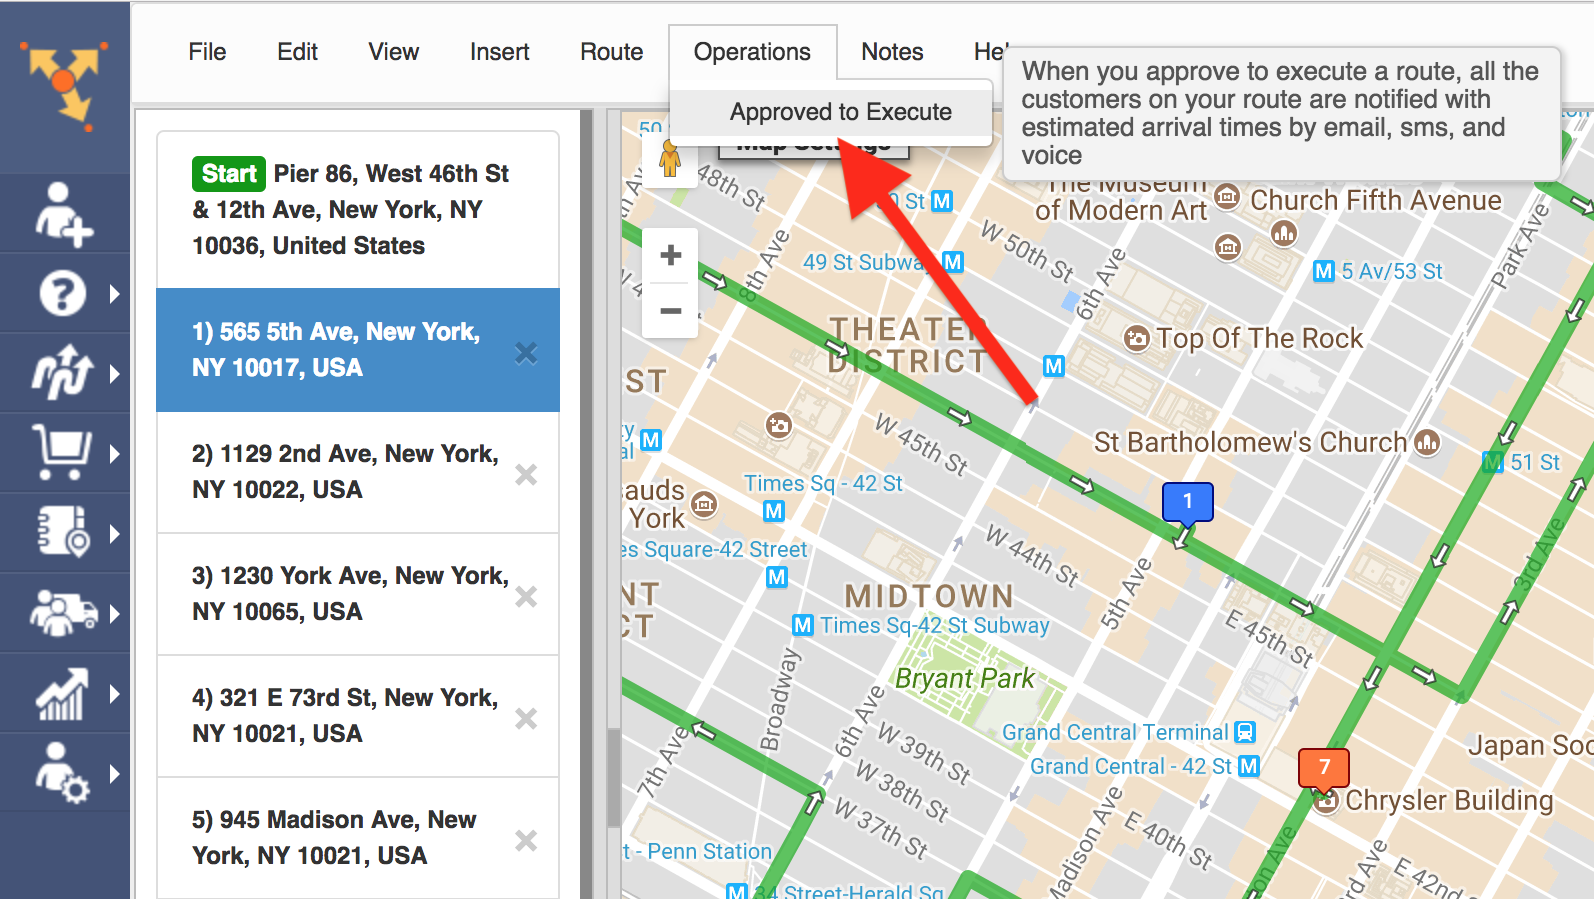 Route4Me's GPS tracking allows your customers to track their orders in real time